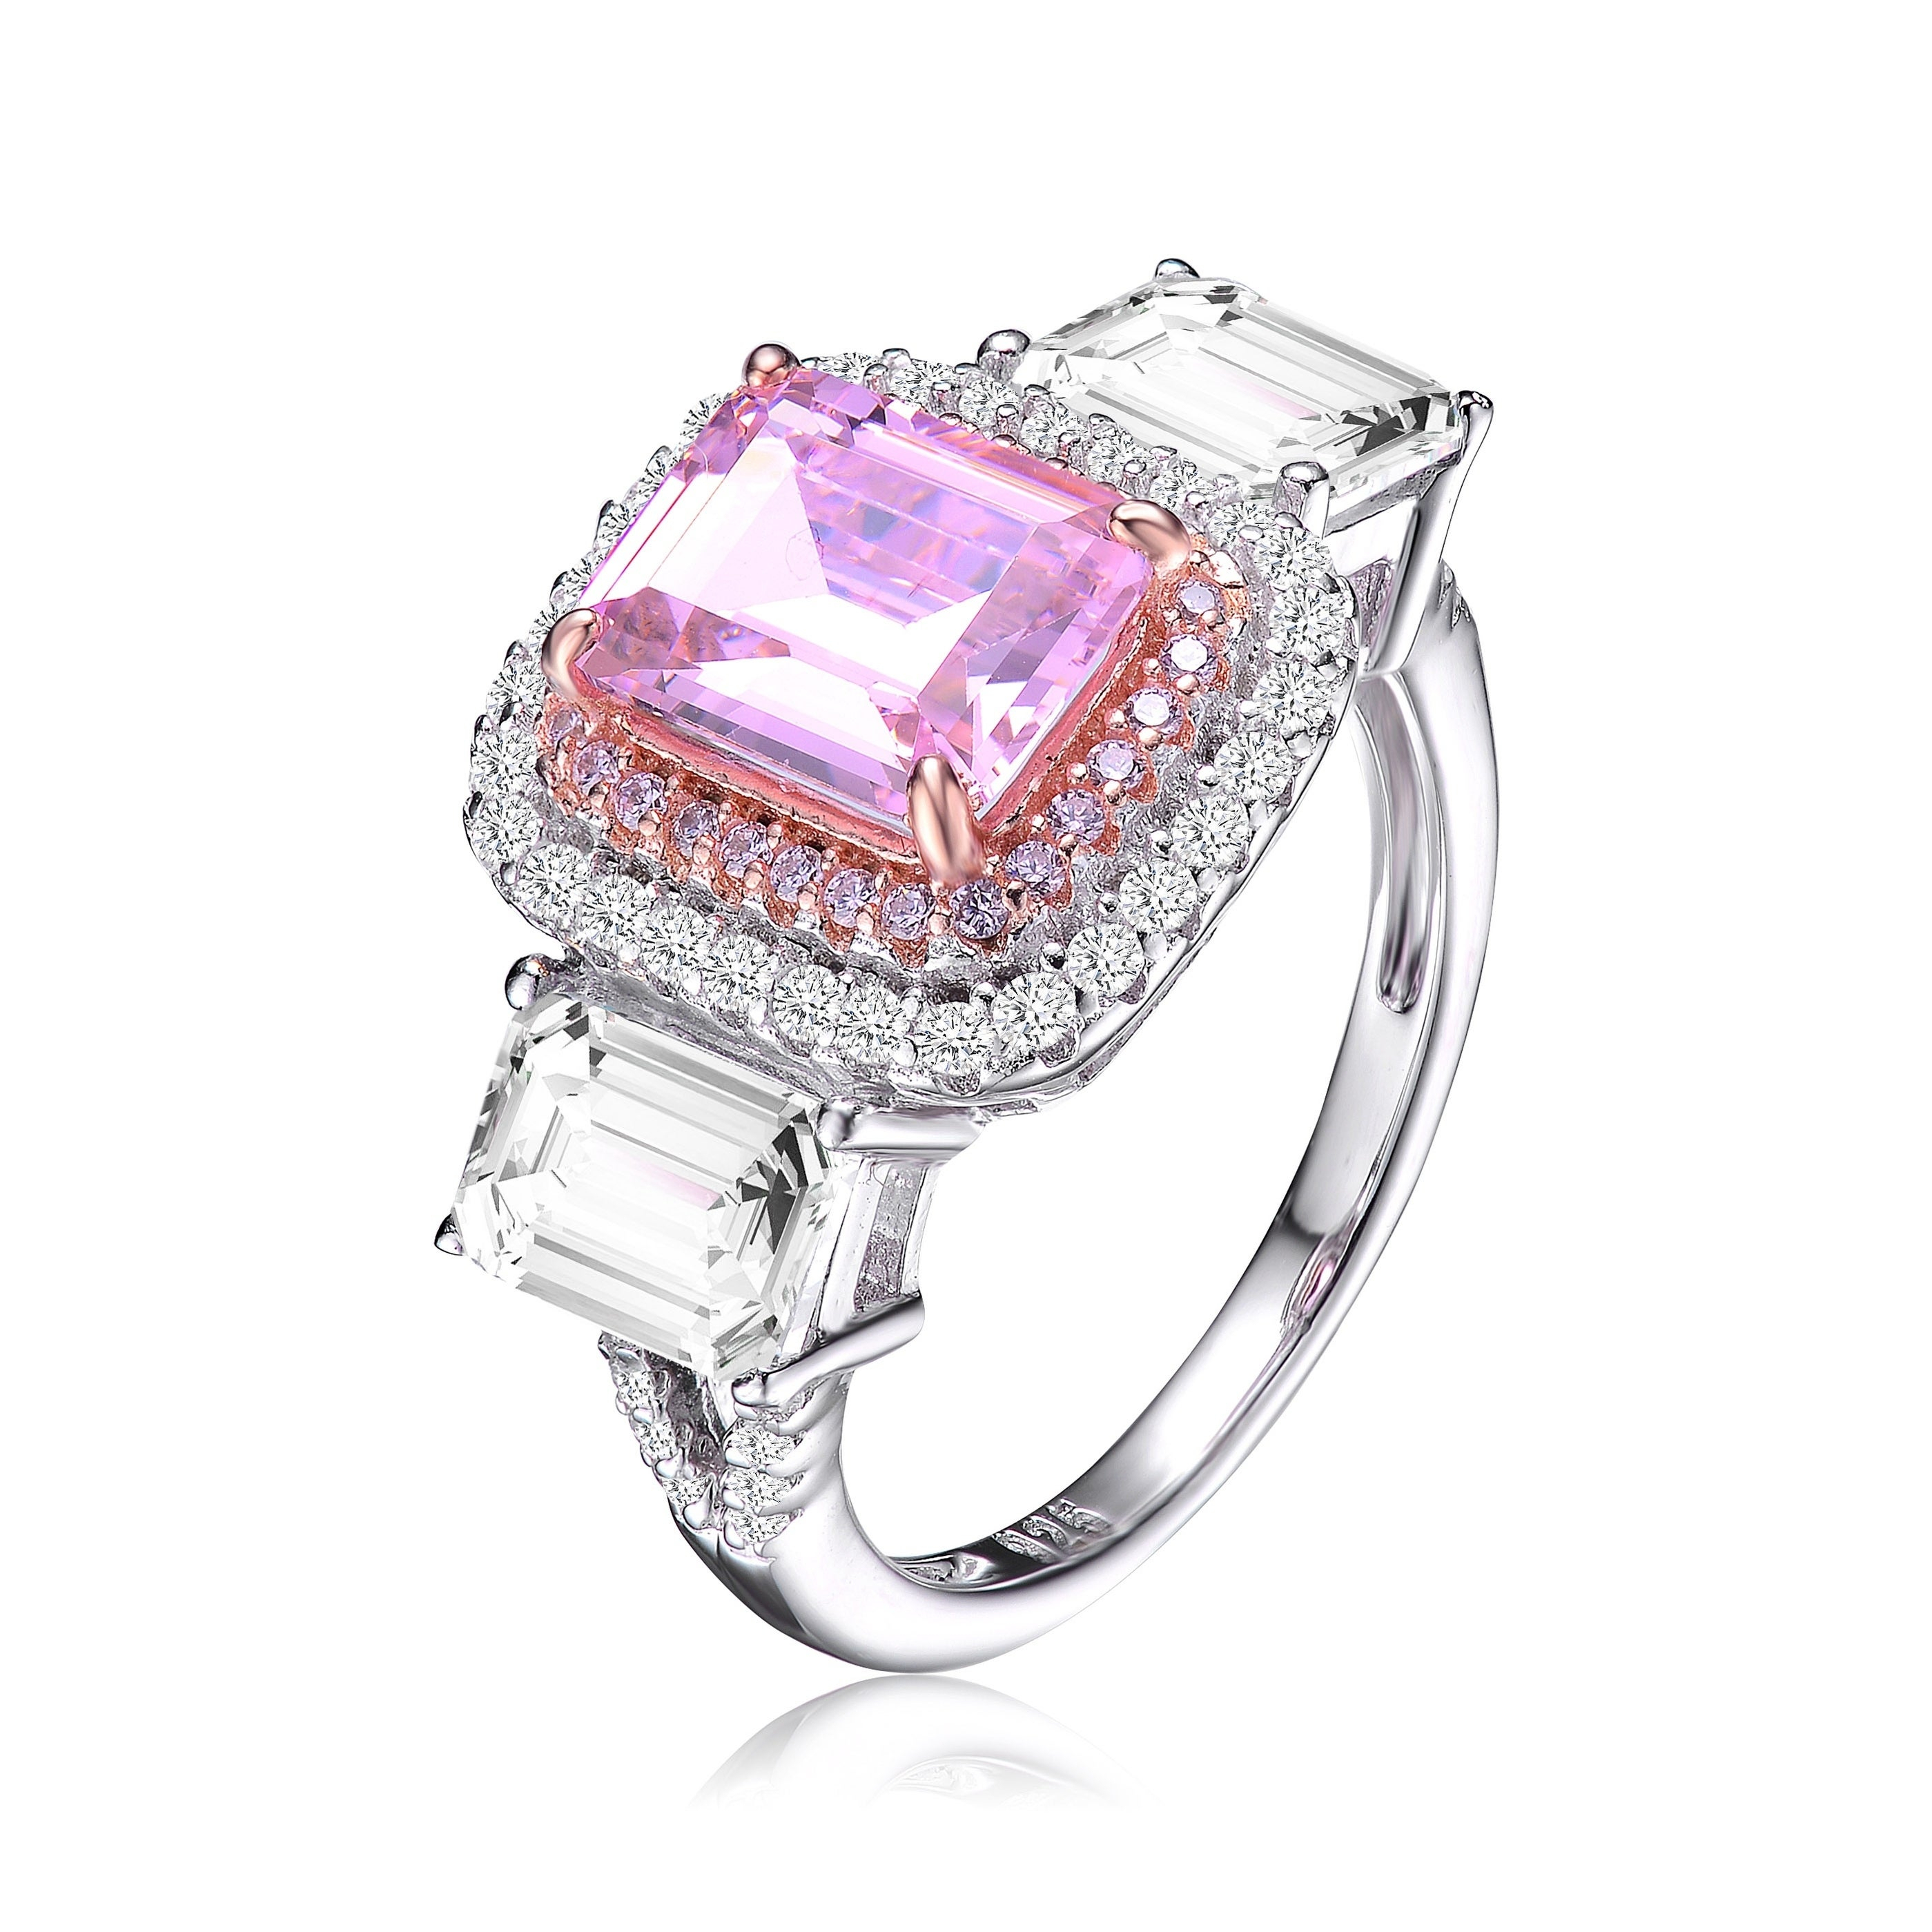 Collette Z Sterling Silver With Rhodium And Rose Gold Plated Pink And Clear Radiant Cubic Zirconias Haloed Three Stone Ring In Most Popular Clear Three Stone Rings (View 17 of 25)